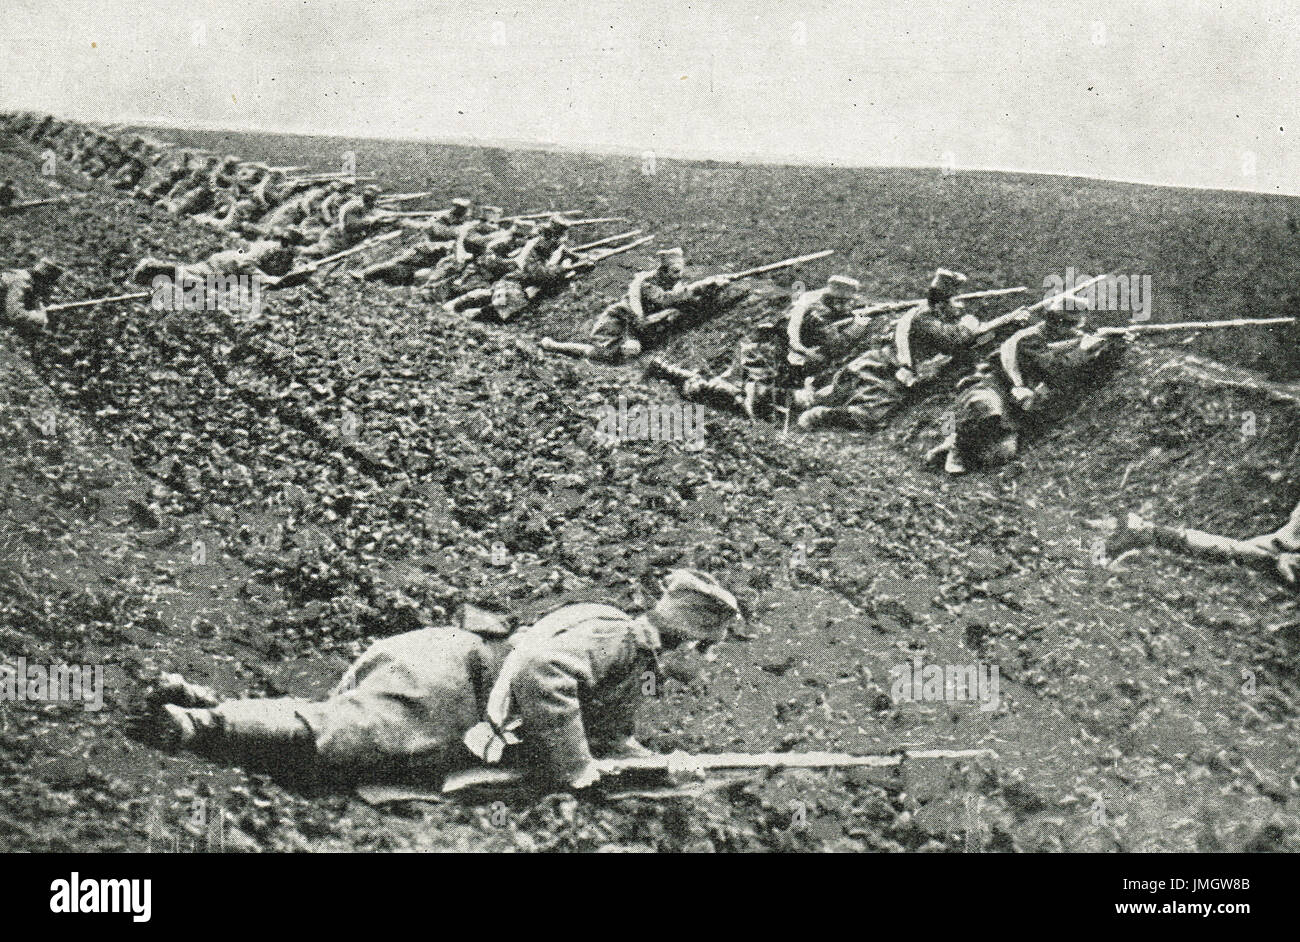 Serbian sharpshooters lying low, ww1 - Stock Image